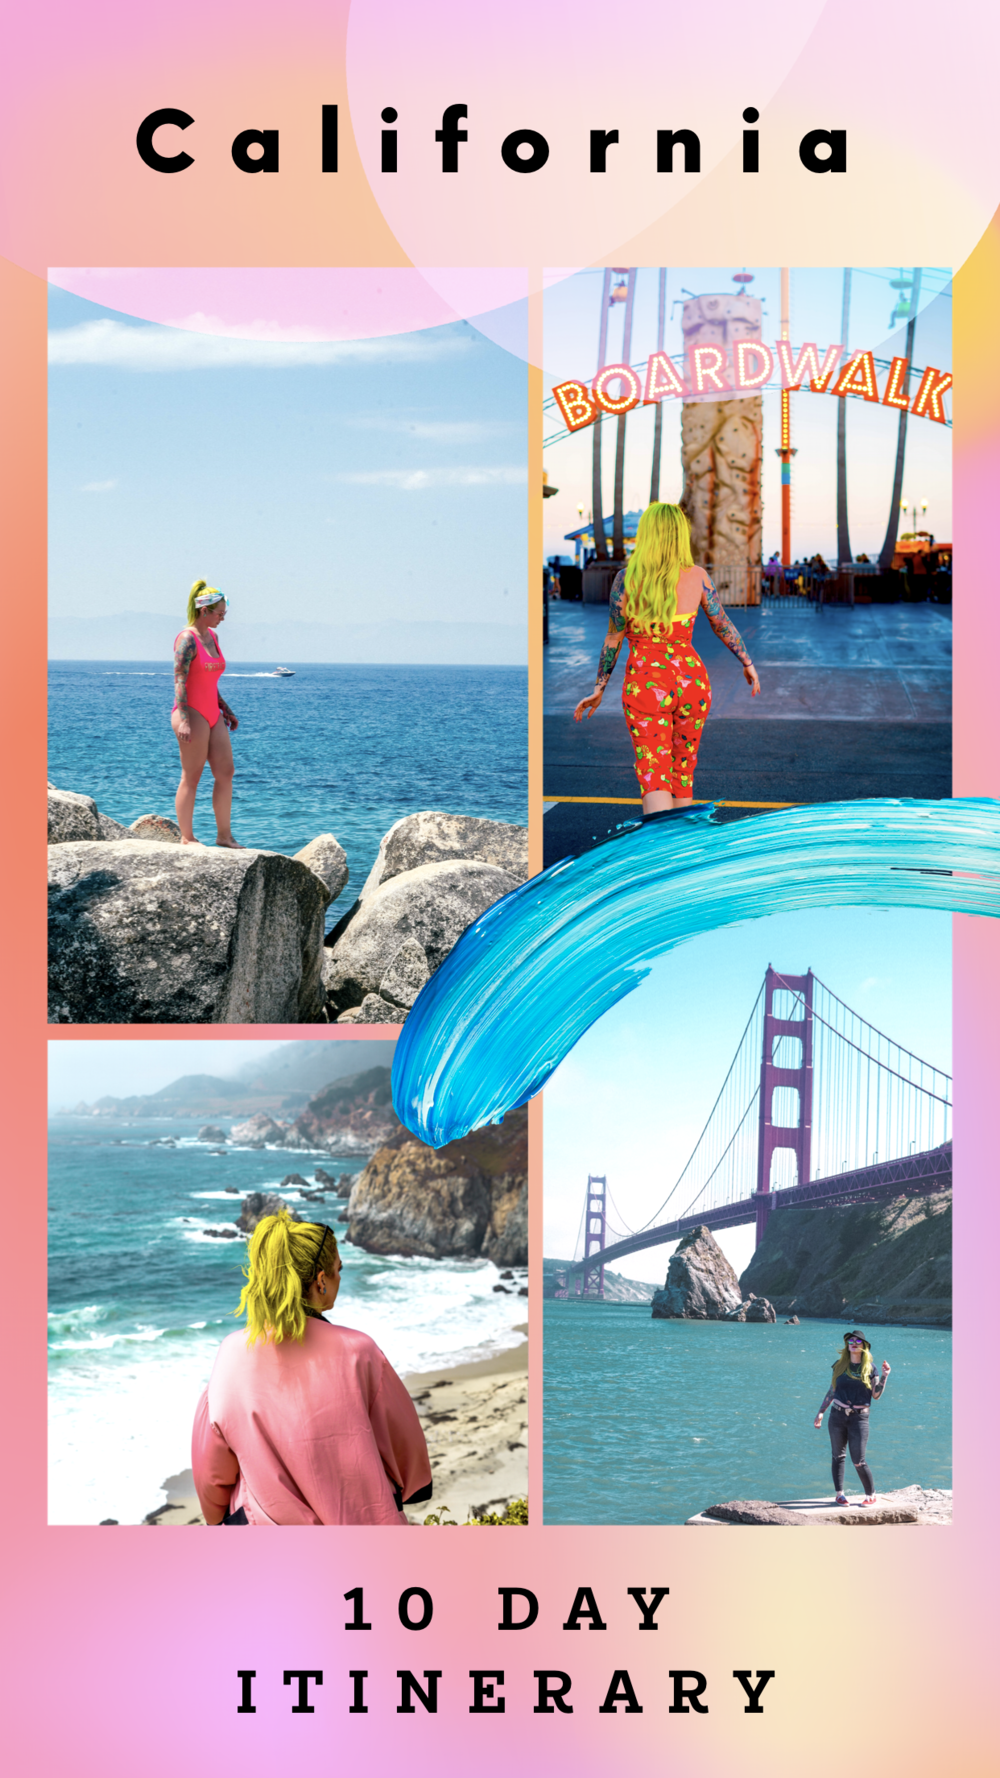 California: 10 Day itinerary - The Chaos Collective